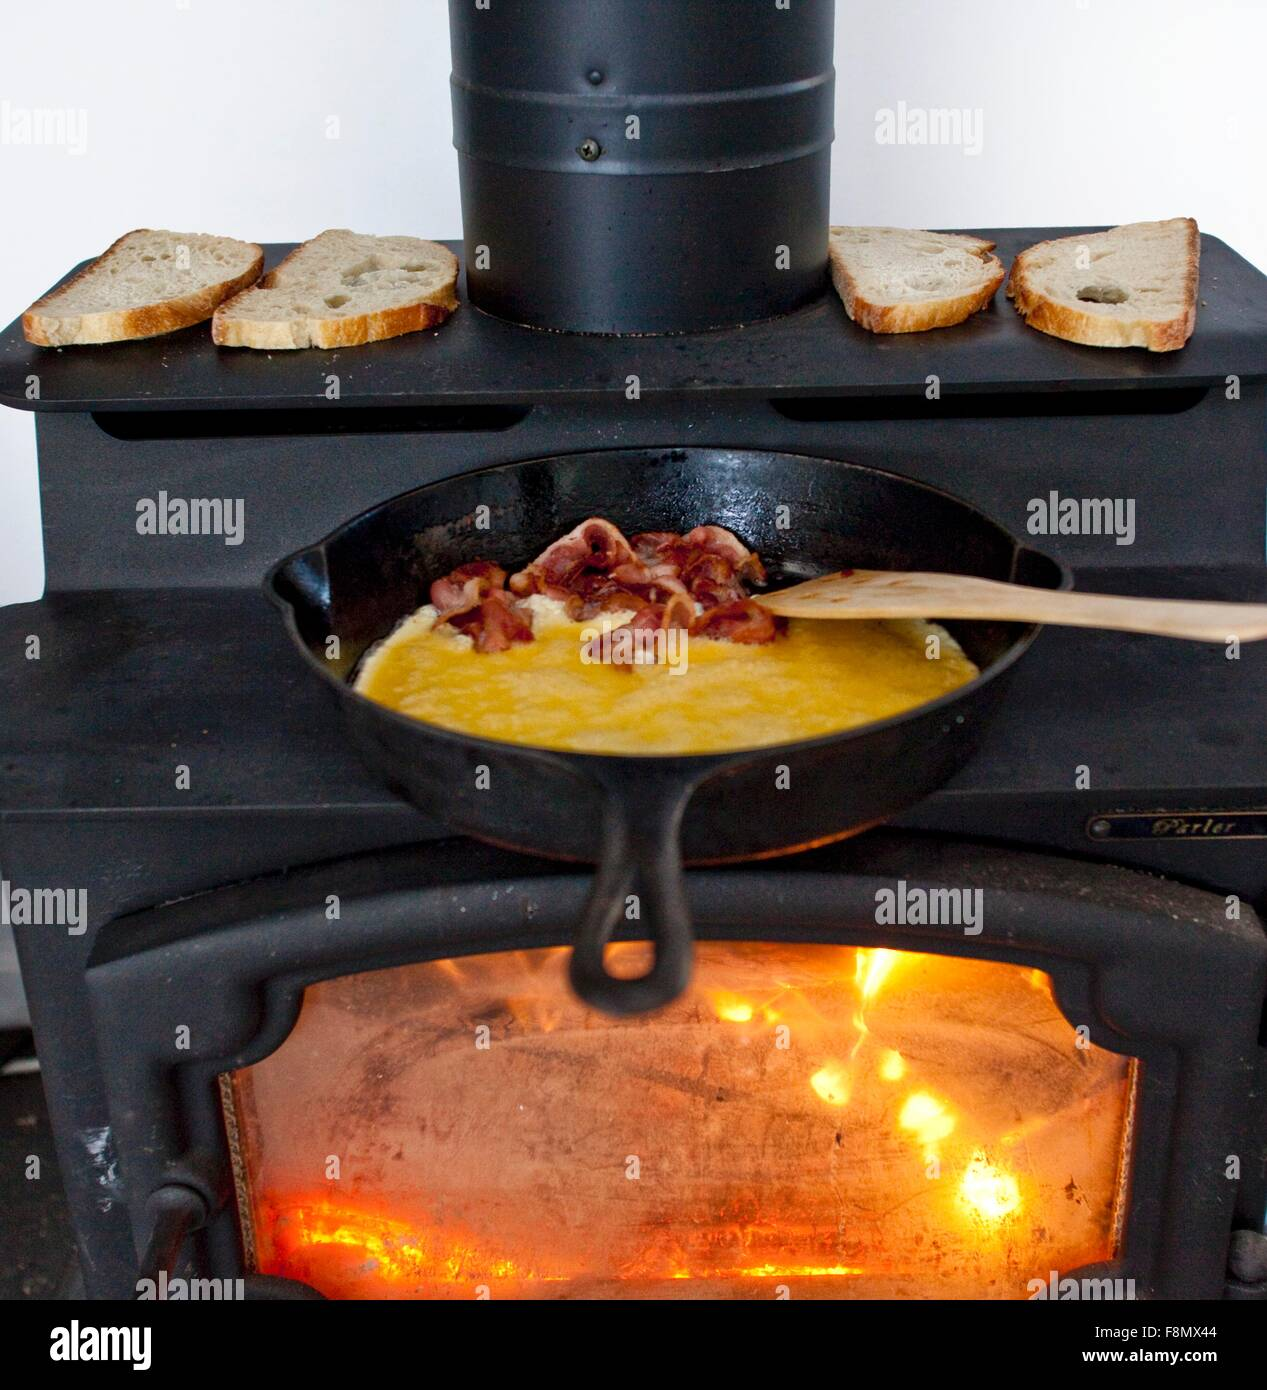 Did the eggs and bacon burn